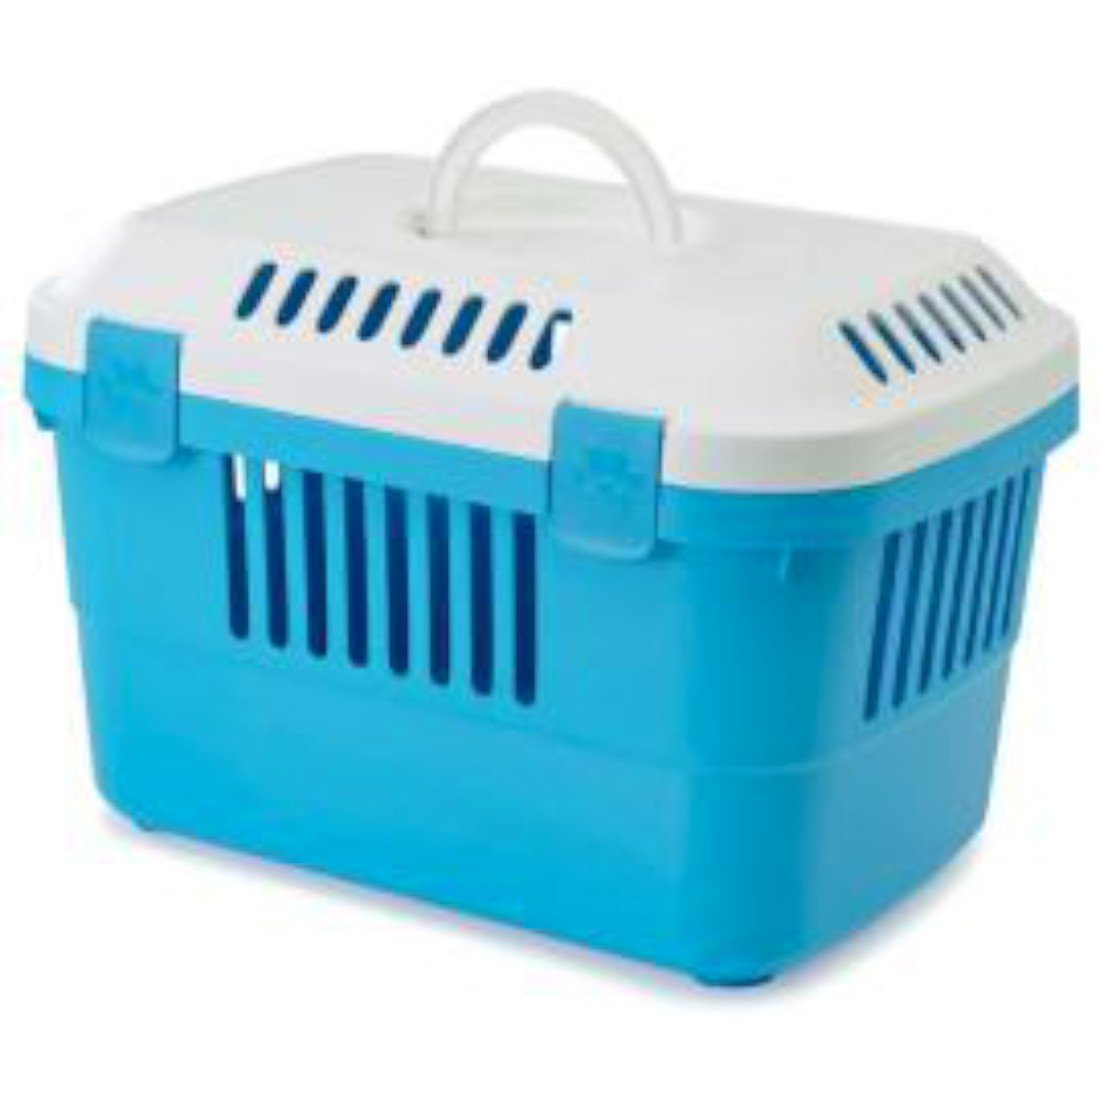 Discovery 1 Pet Carrier White/pacific Blue 48.5x33x31.5cm (Pack of 4) Savic